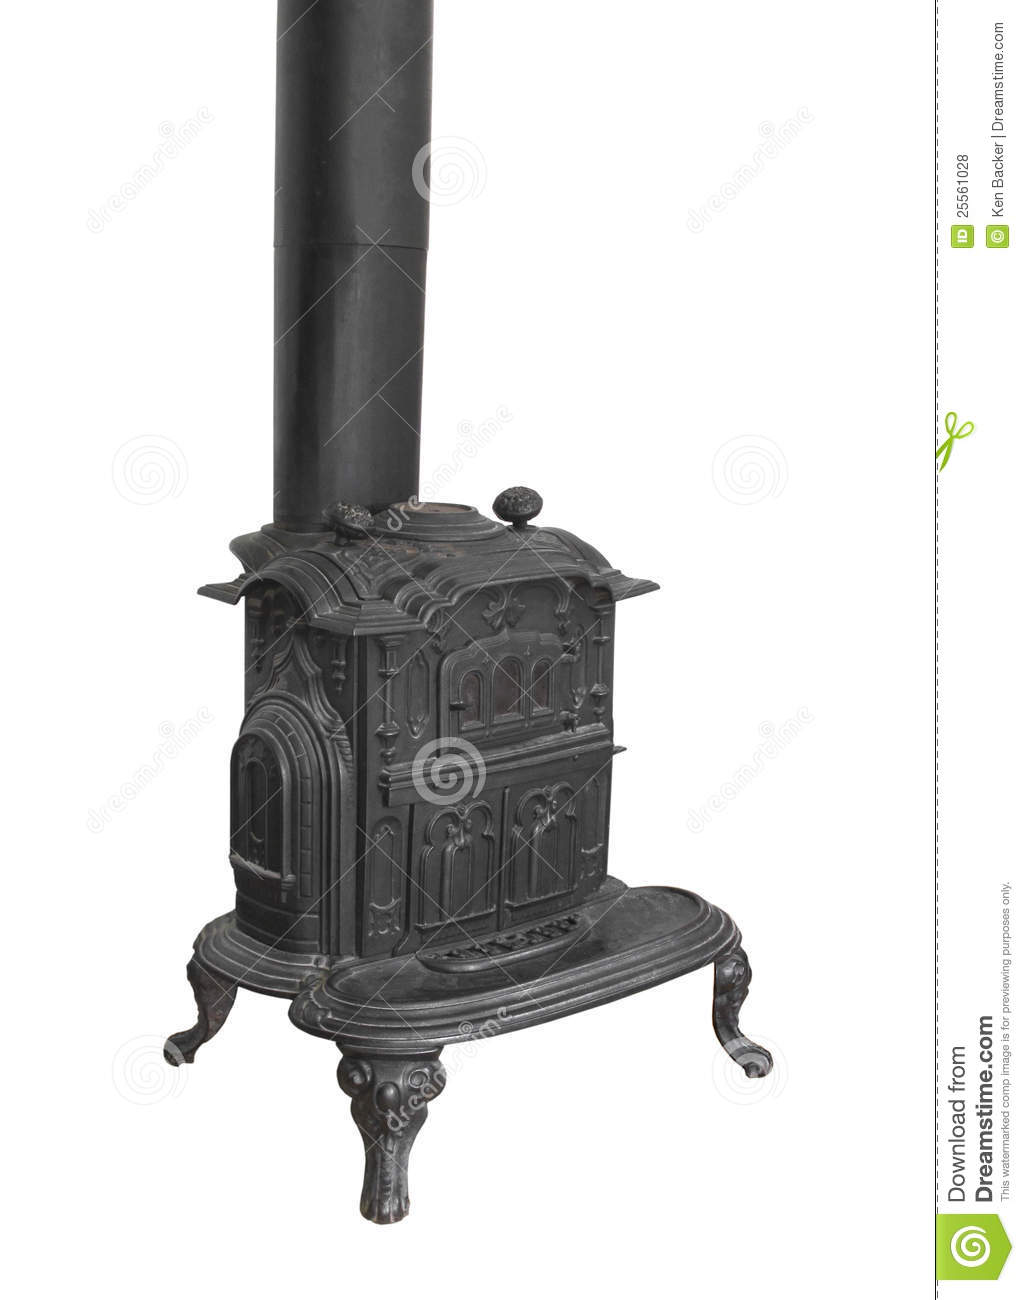 Old wood burning heater stove isolated. - Old Wood Burning Heater Stove Isolated. Royalty Free Stock Photos